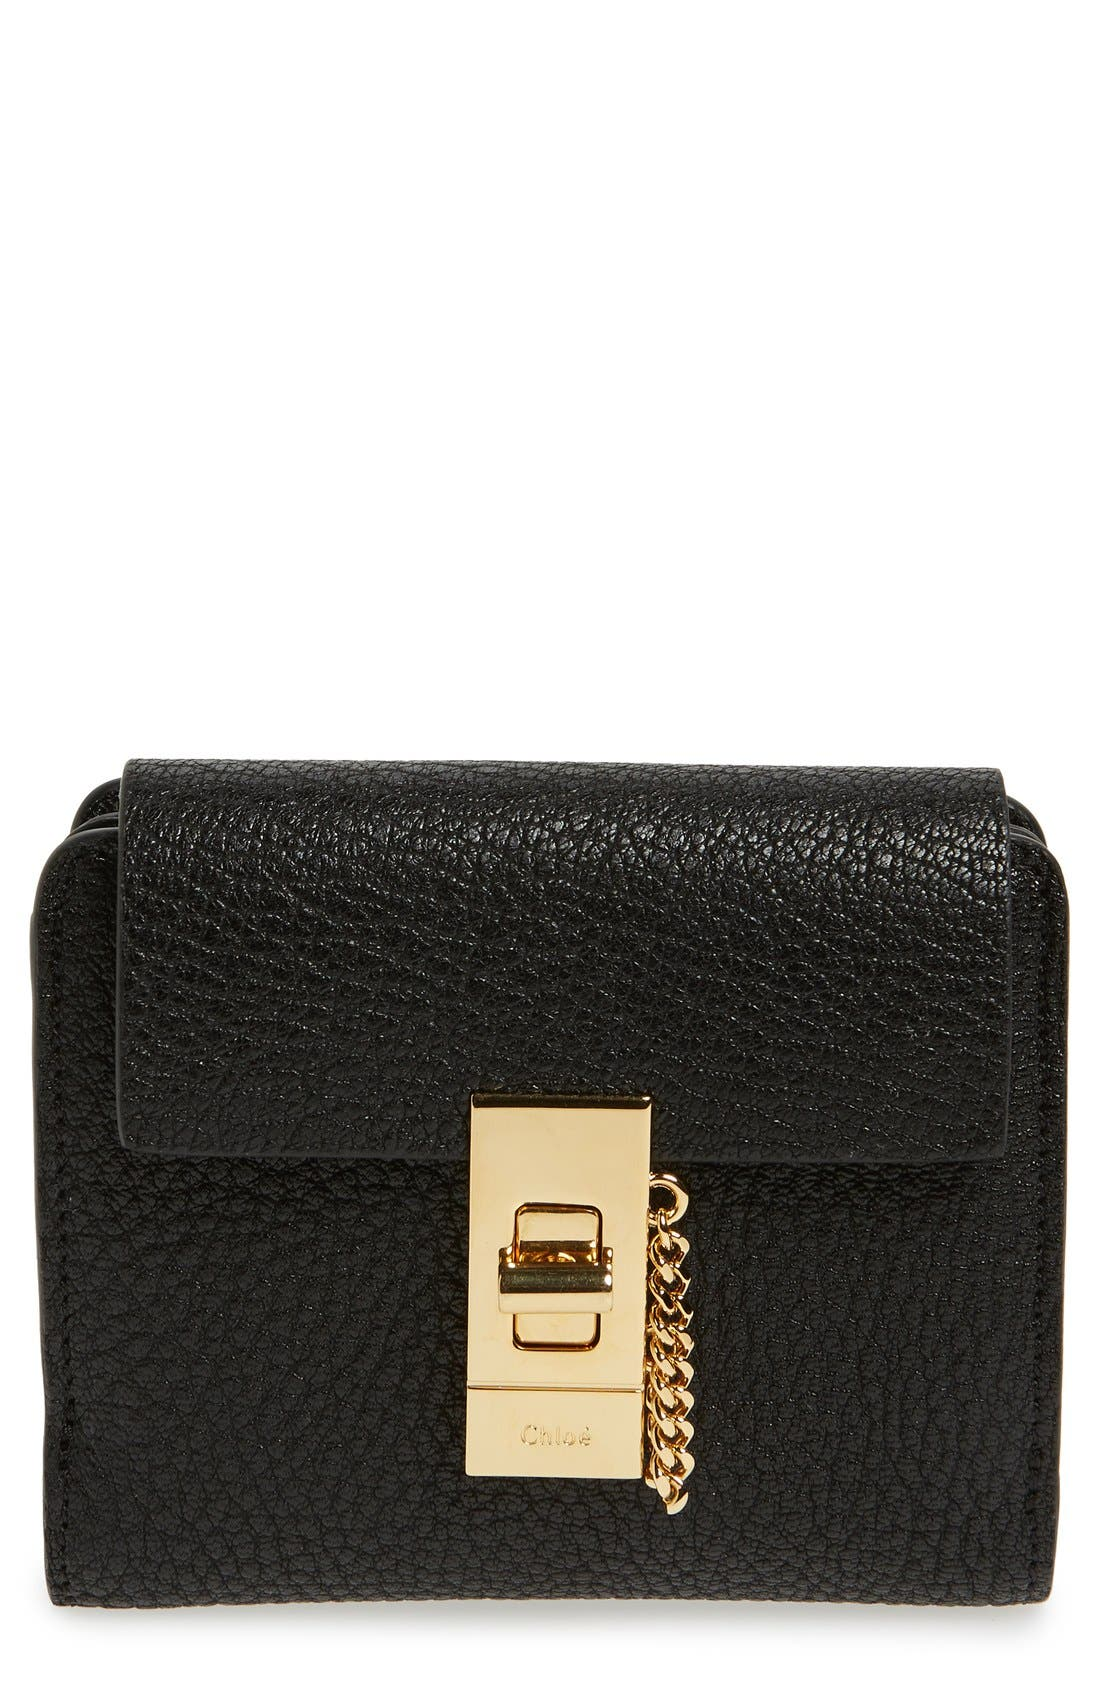 CHLOÉ Drew Calfskin Leather Square Wallet